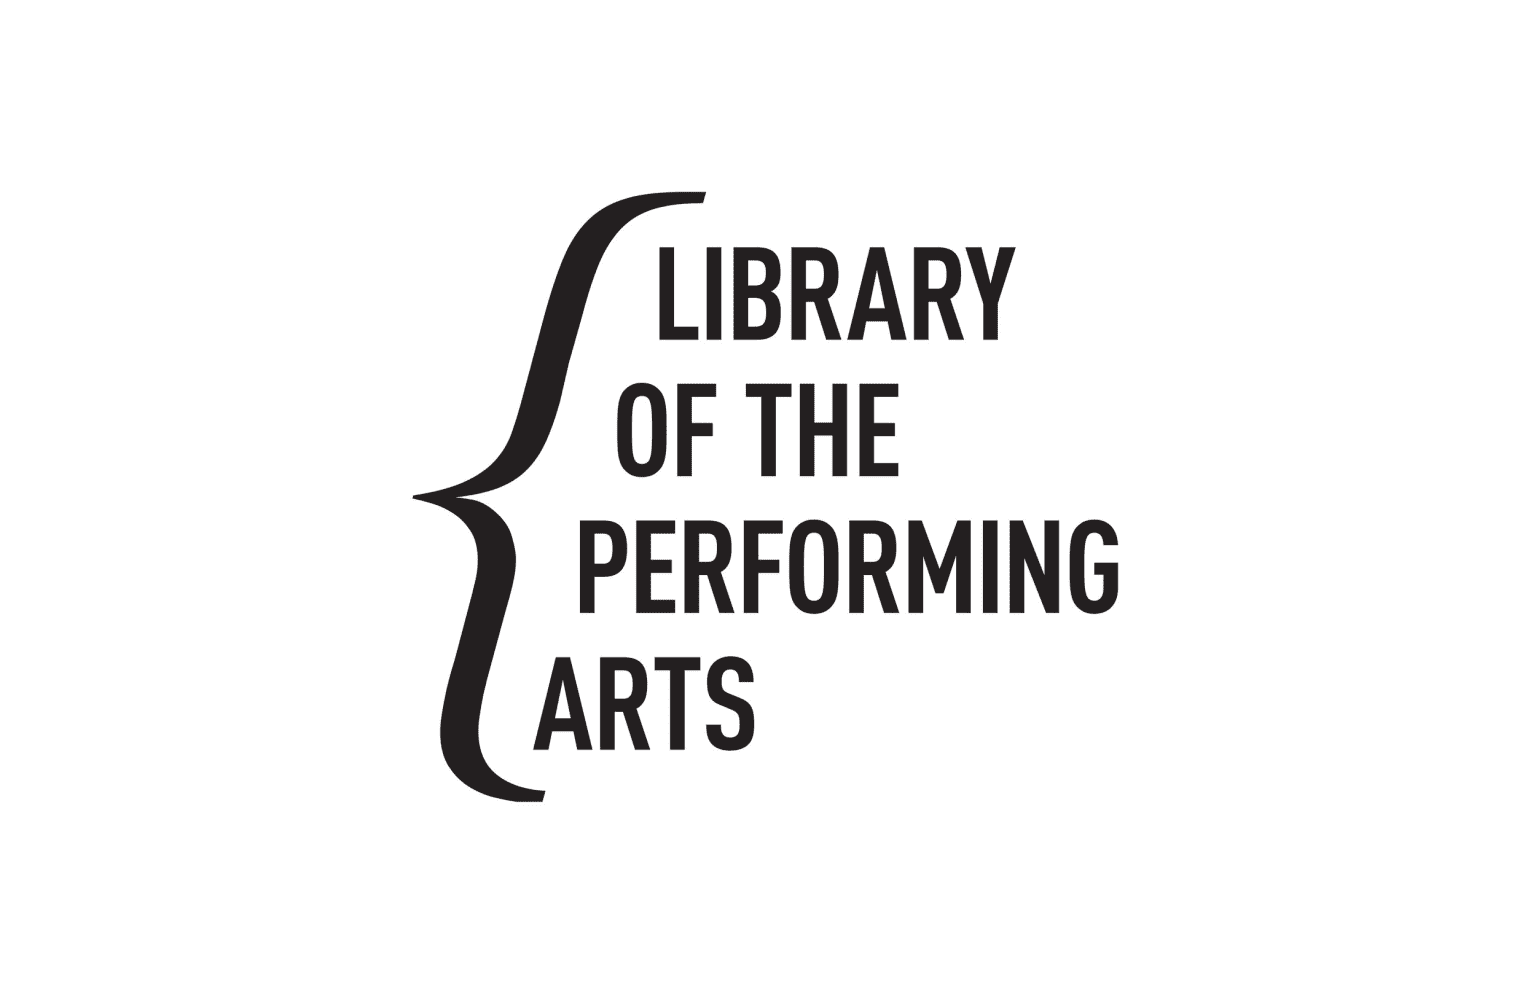 Library of the Performing Arts